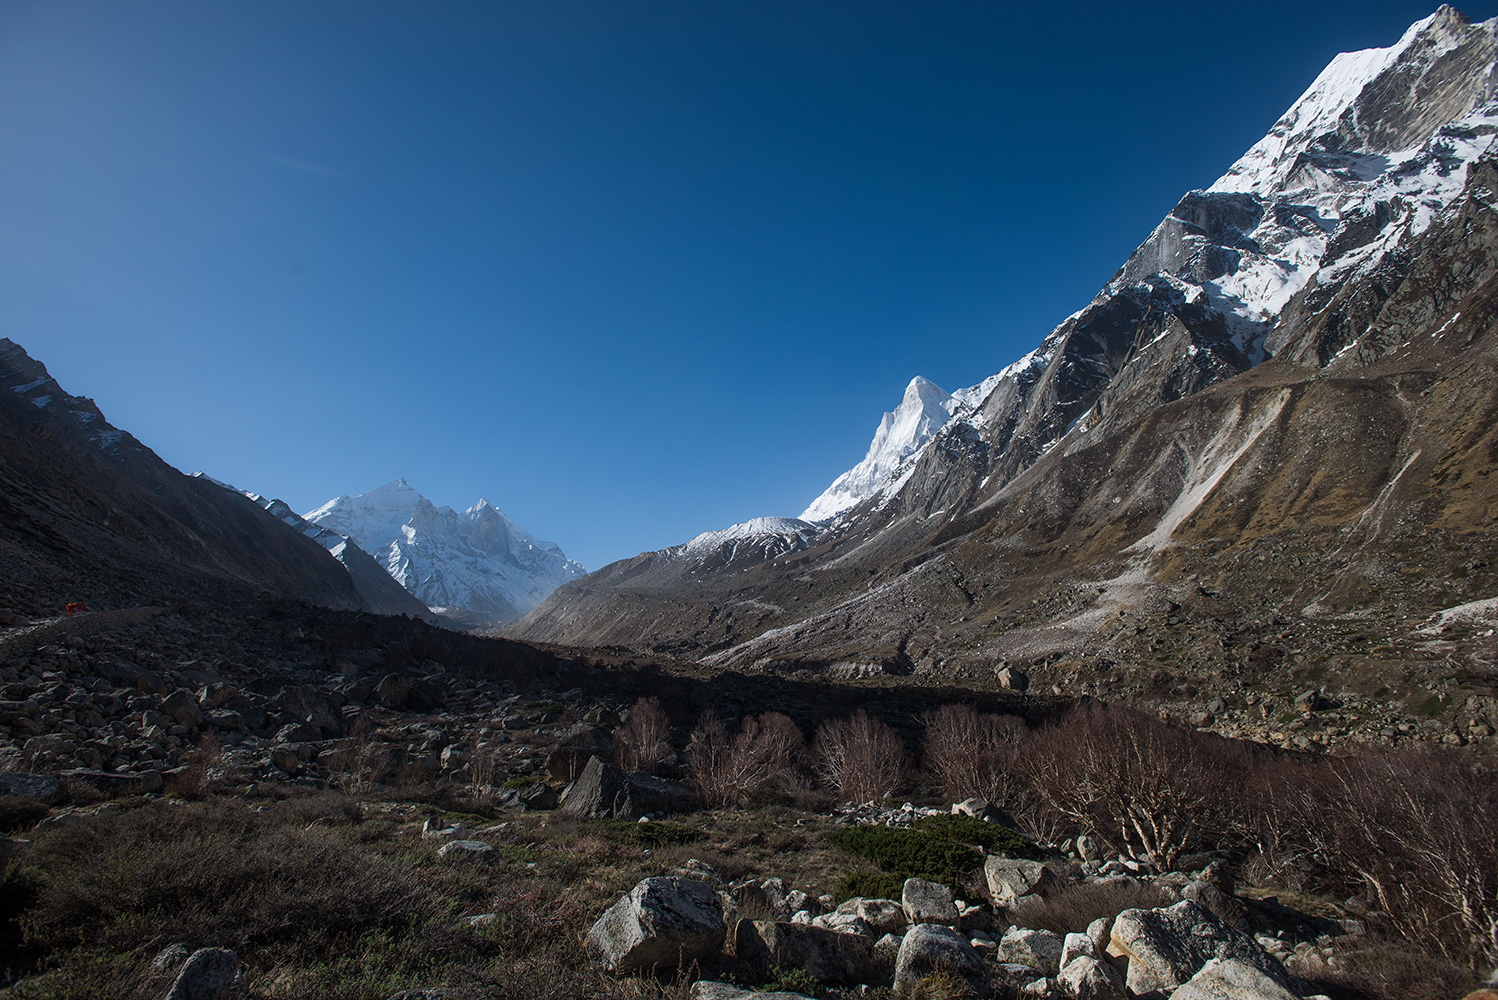 On the trail up to Gaumukh from Bhojbas in the Bhagirathi valley. Early in the morning. Ahead are the Bhagirathi peaks, and Shivling is just appearing to the south.